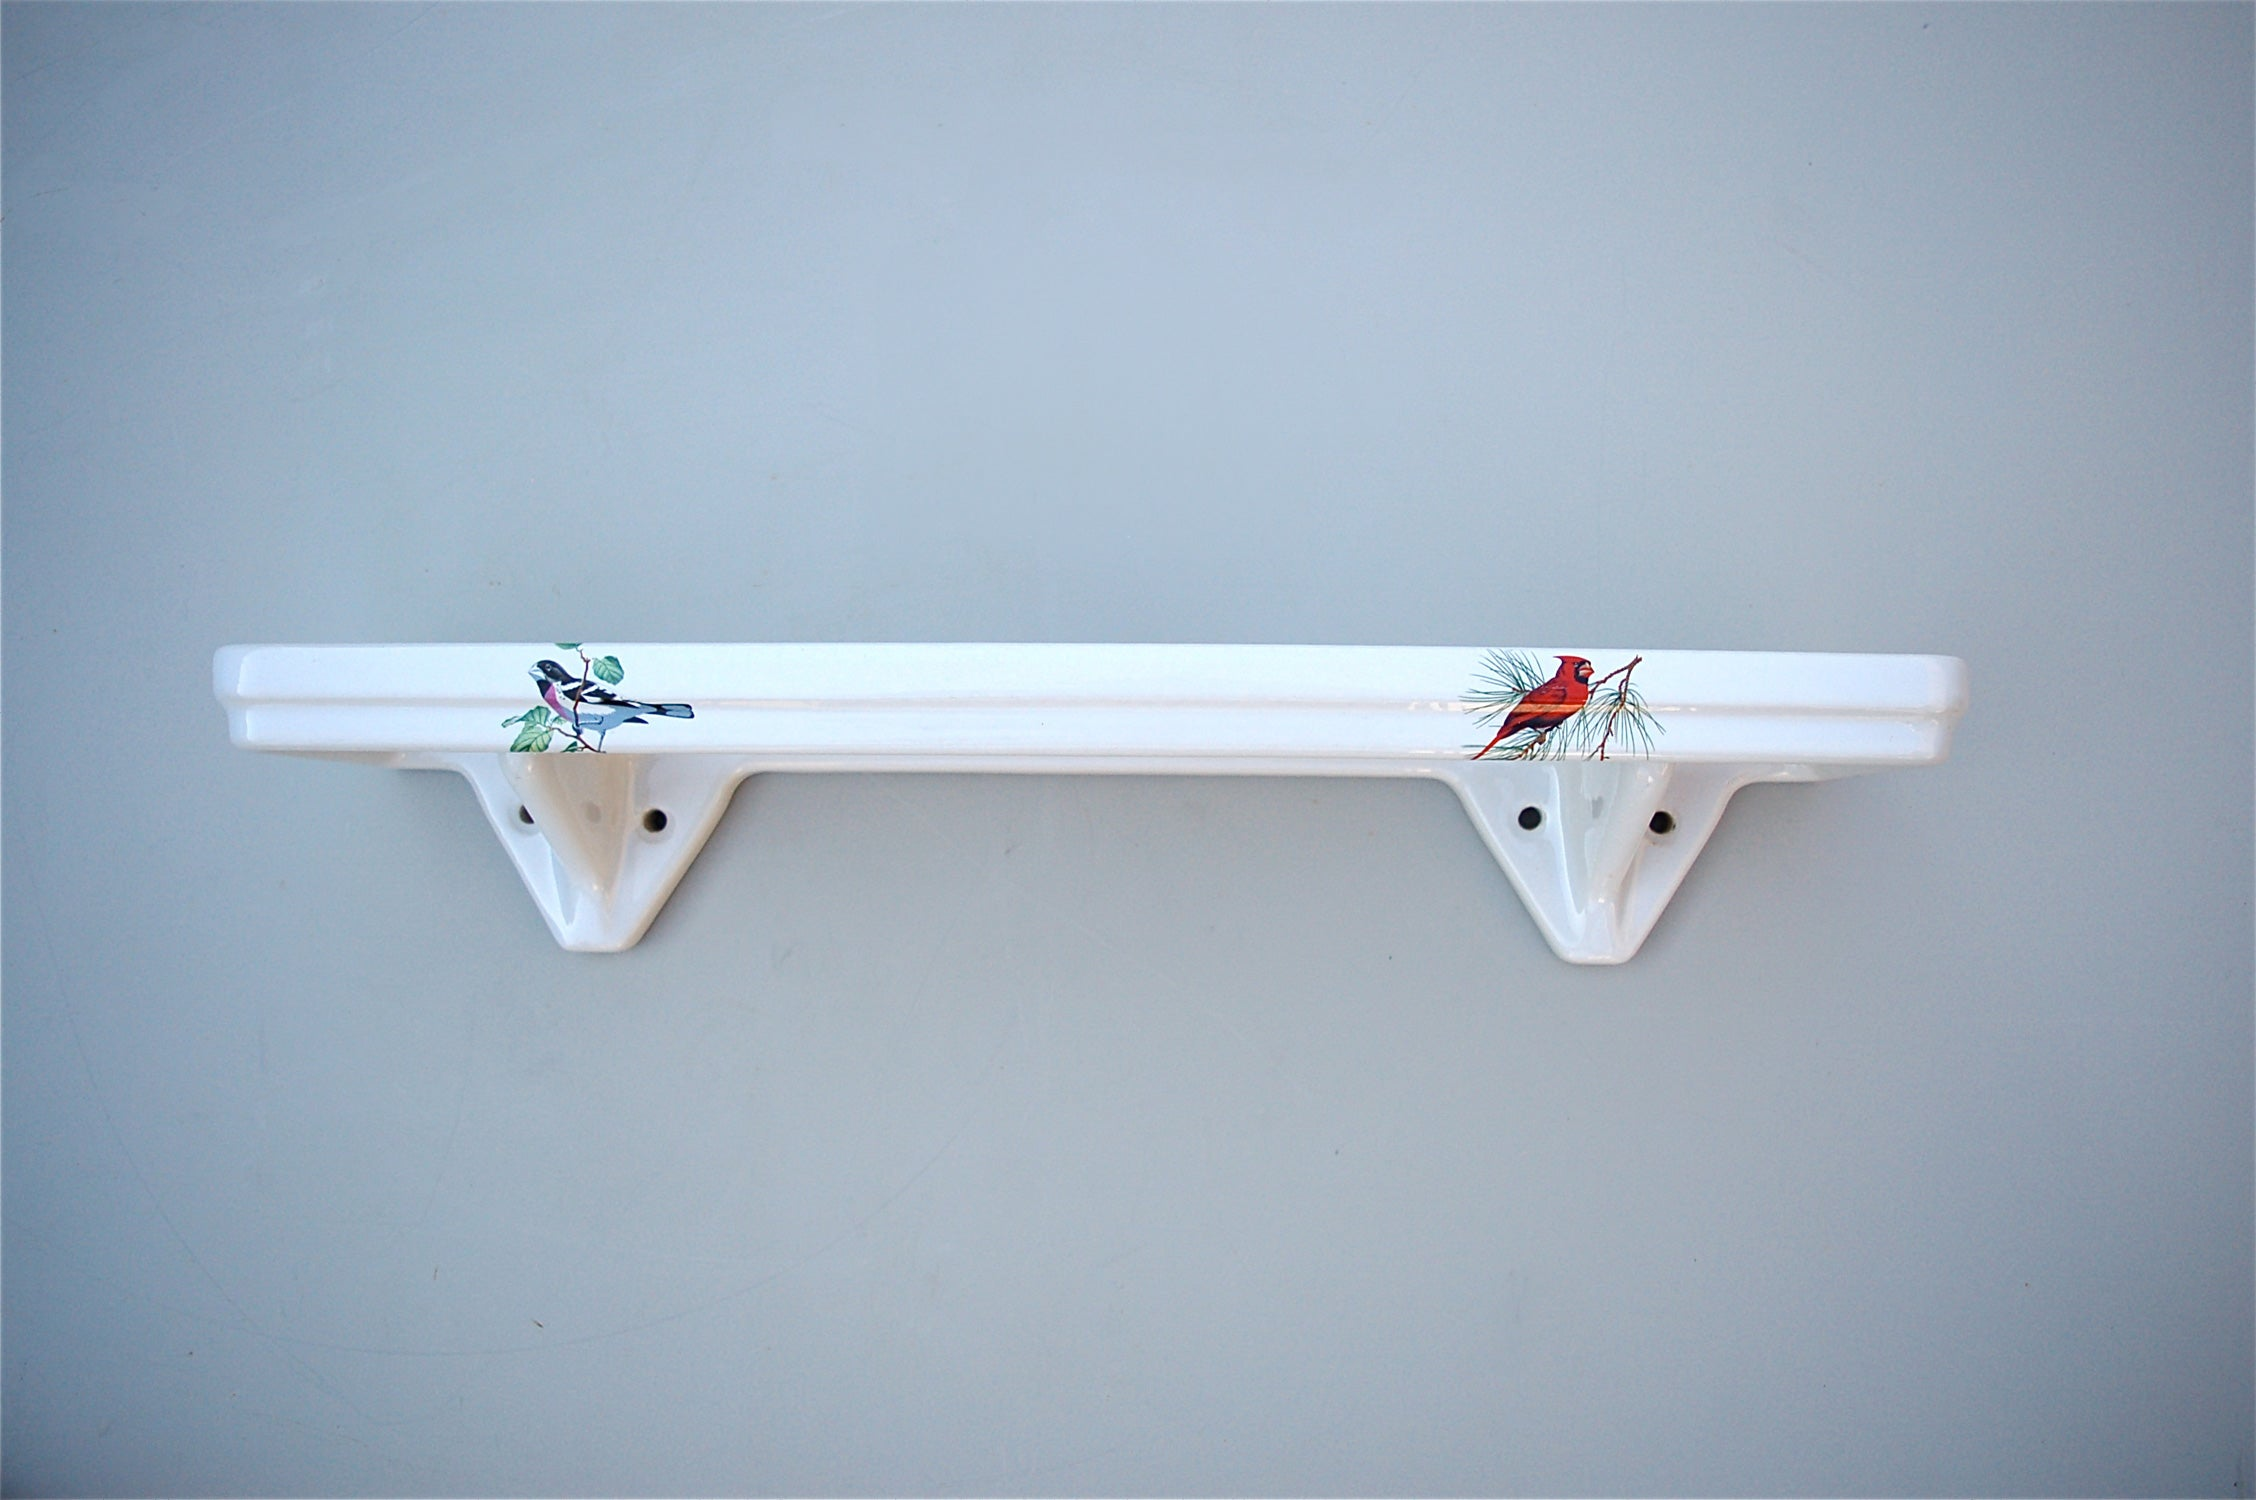 Porcelain Bathroom Vanity Shelf with Bird Decoration, 1950s, France ...